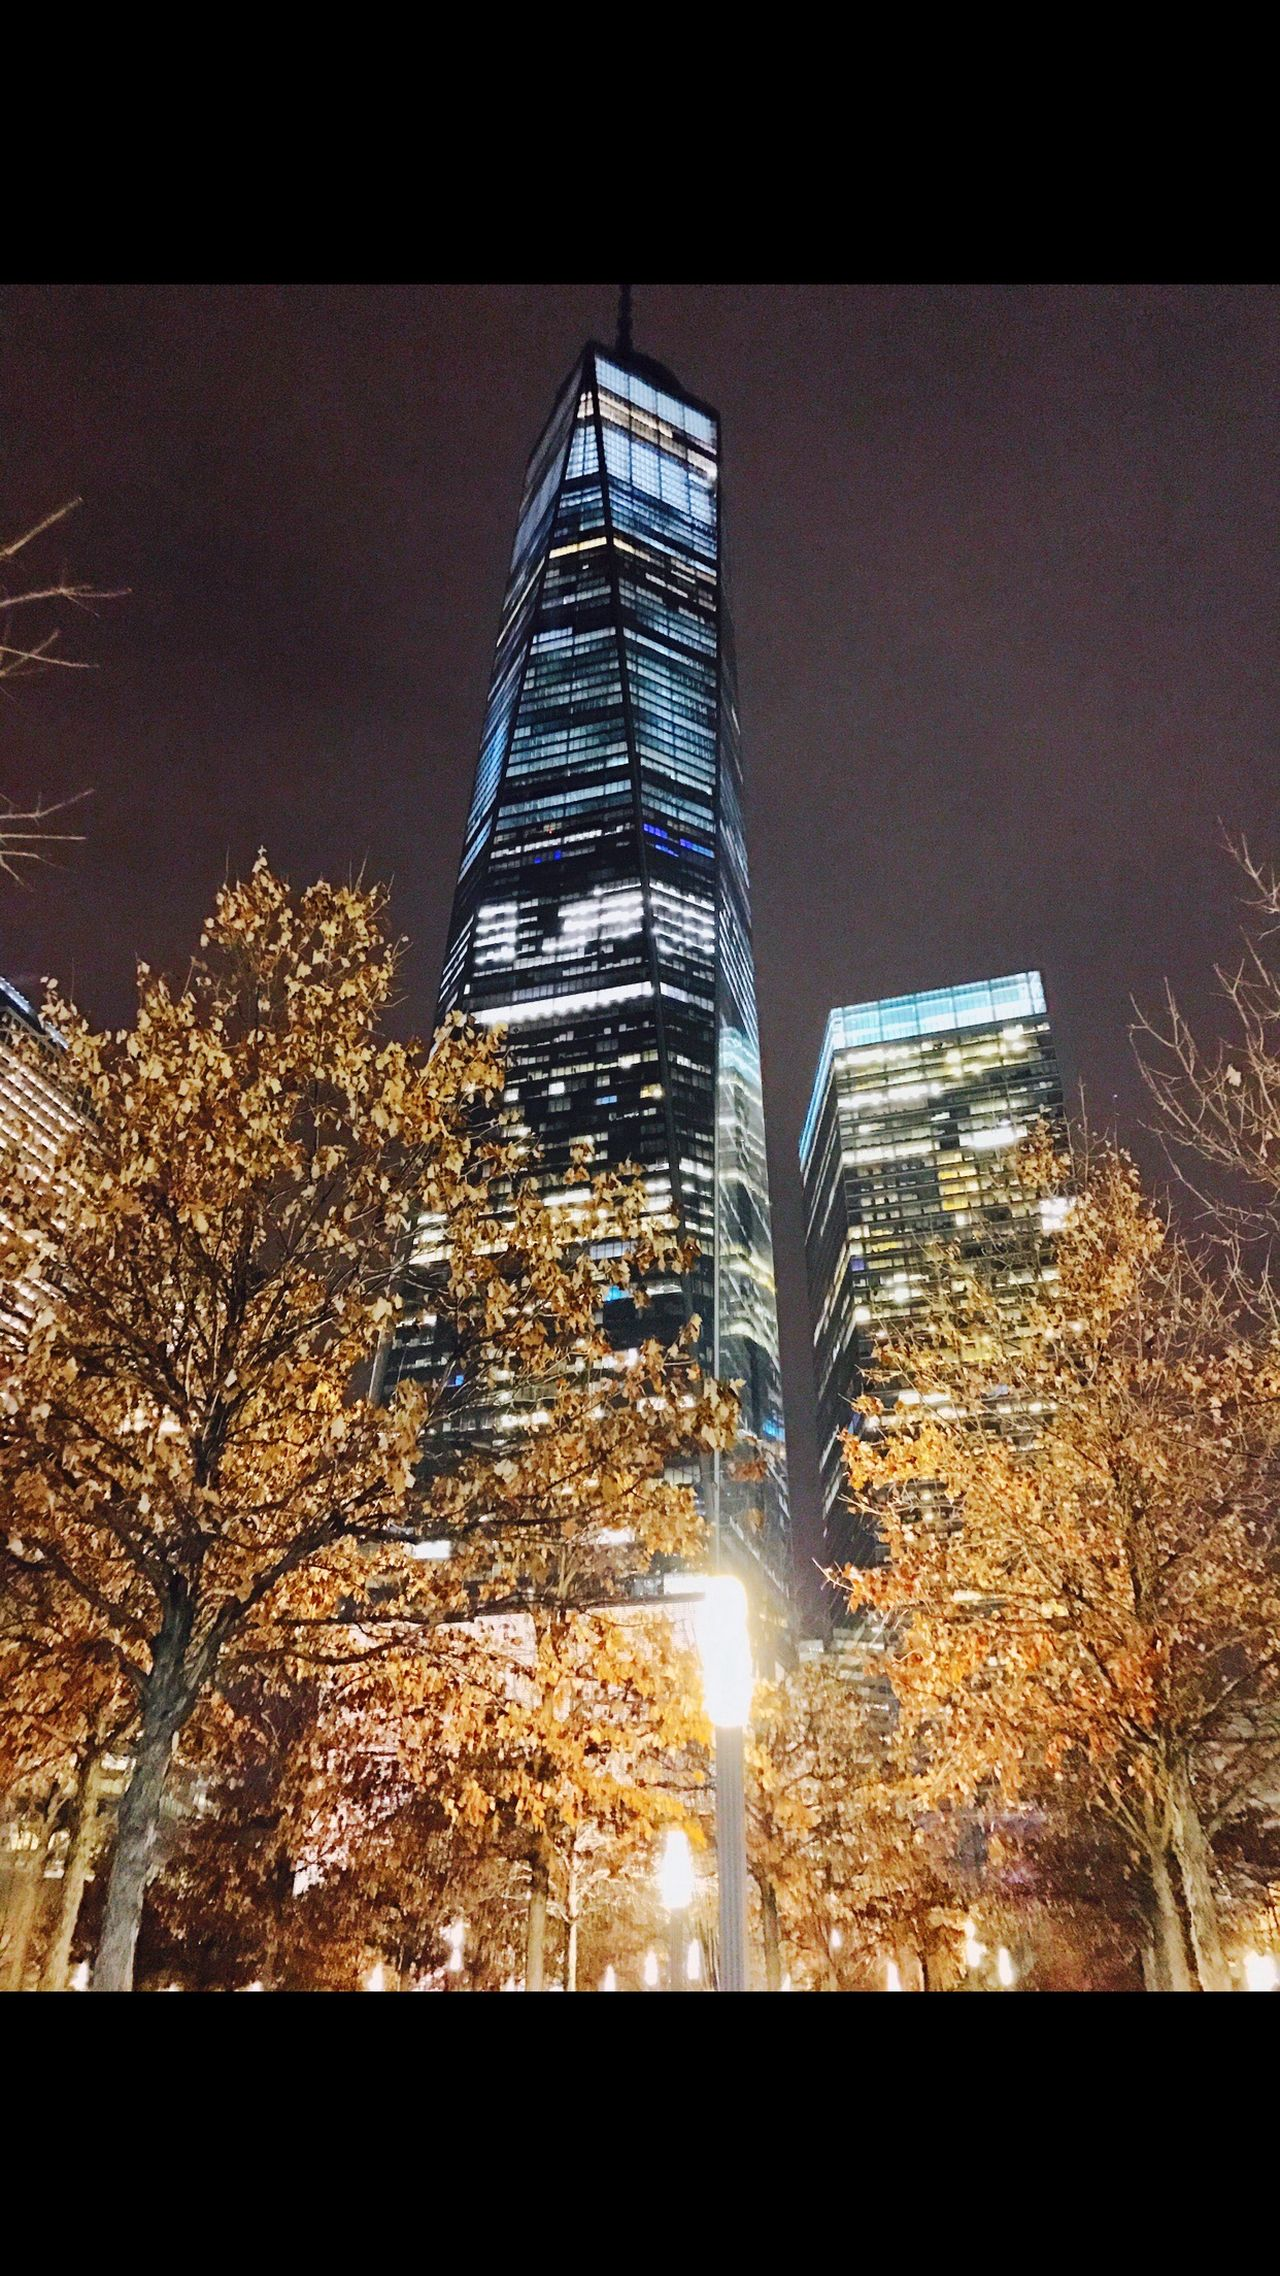 One World Trade Center World Trade Center New York City New York One World Trade Center Building Sky Scraper Downtown Financial District  Night Shot Night Cold Dream Winter December End Of The Year